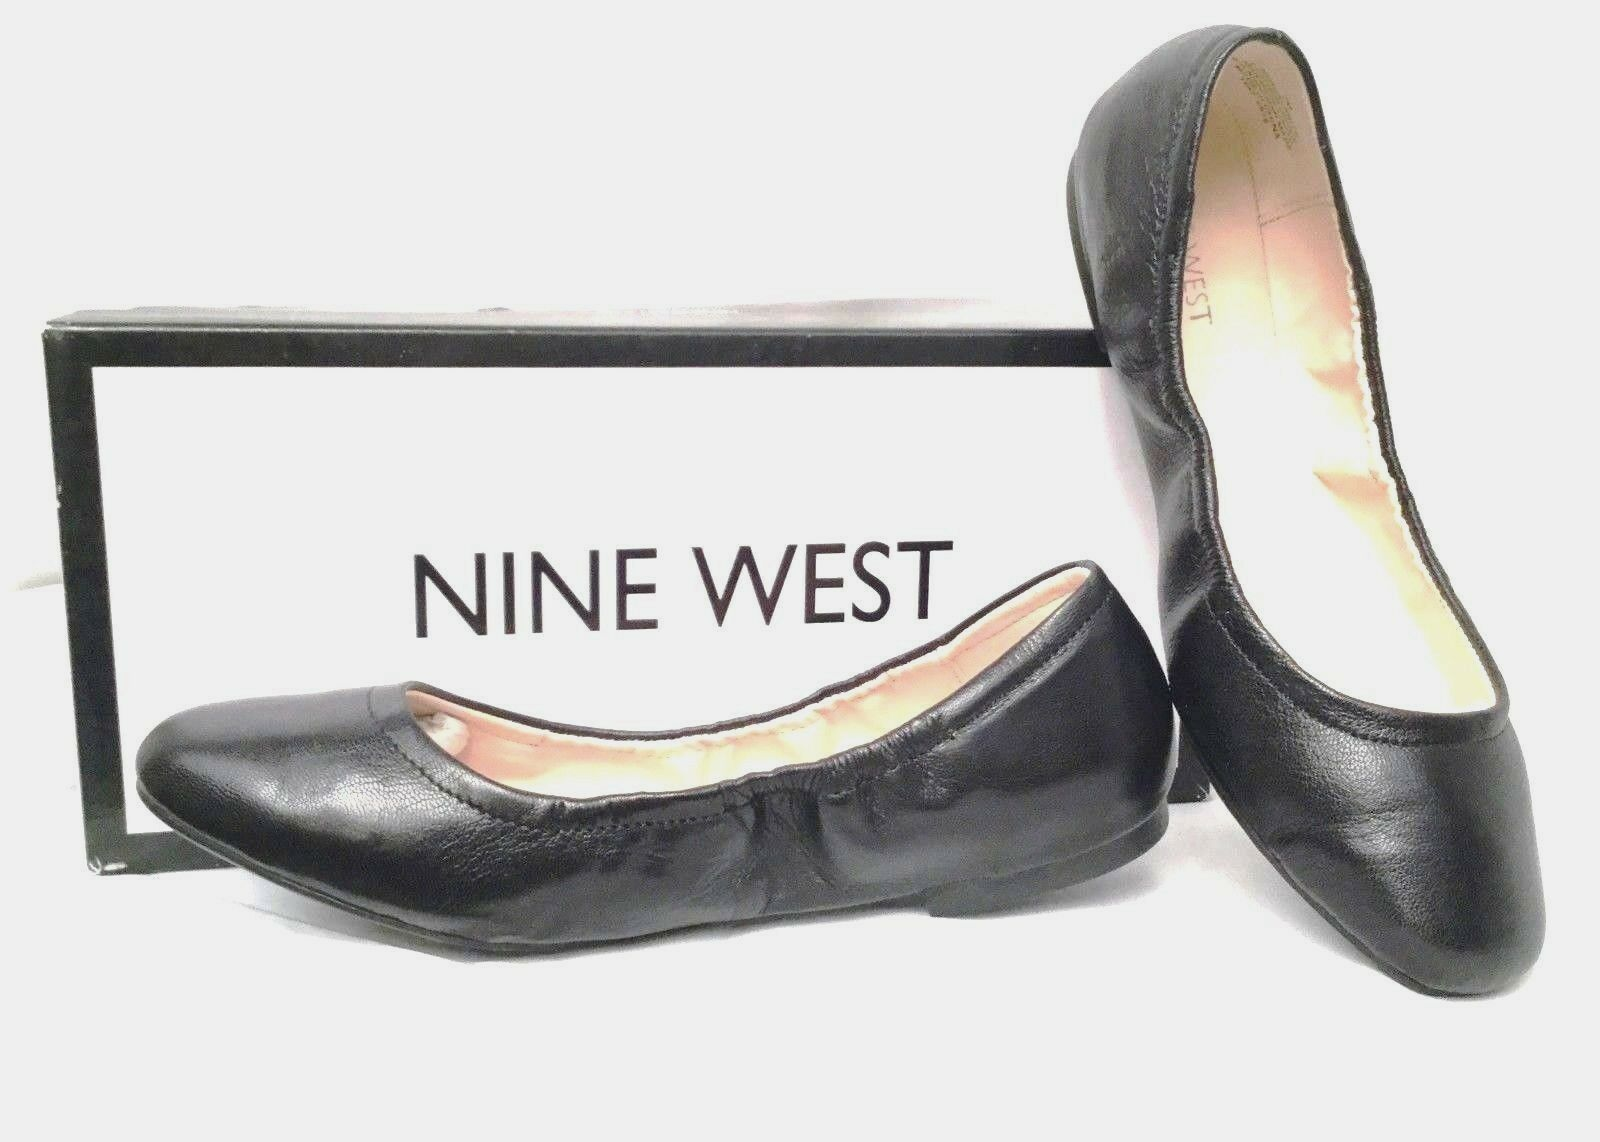 NINE WEST GirlsNite Ballet Flats in BLACK Leder, SIZE 7M - BRAND NEU in BOX